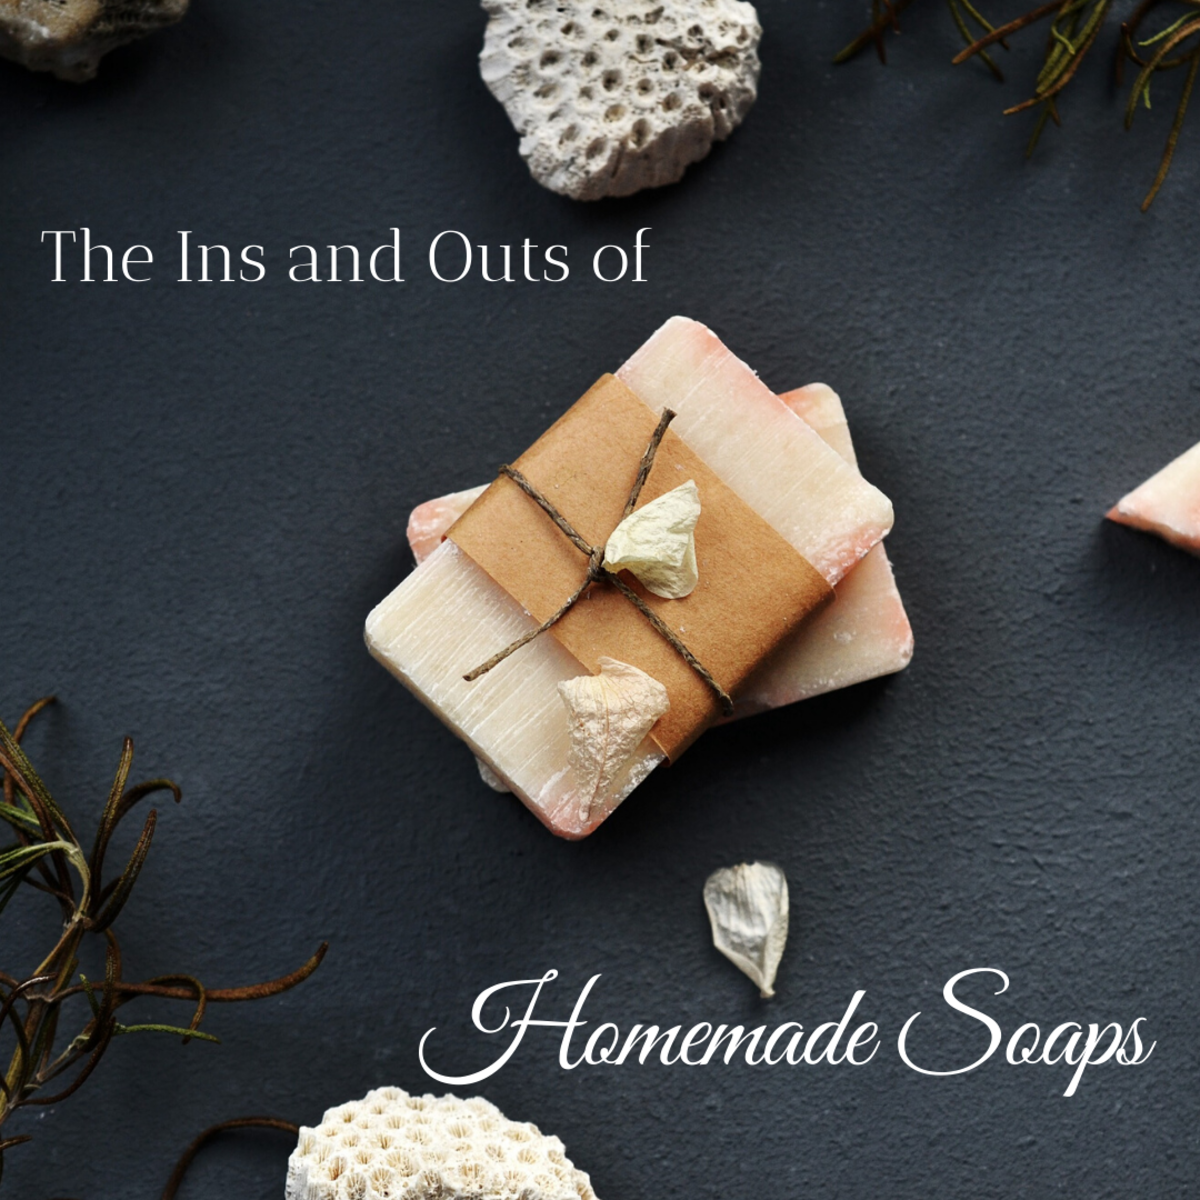 What to Look for in a Handmade Soap